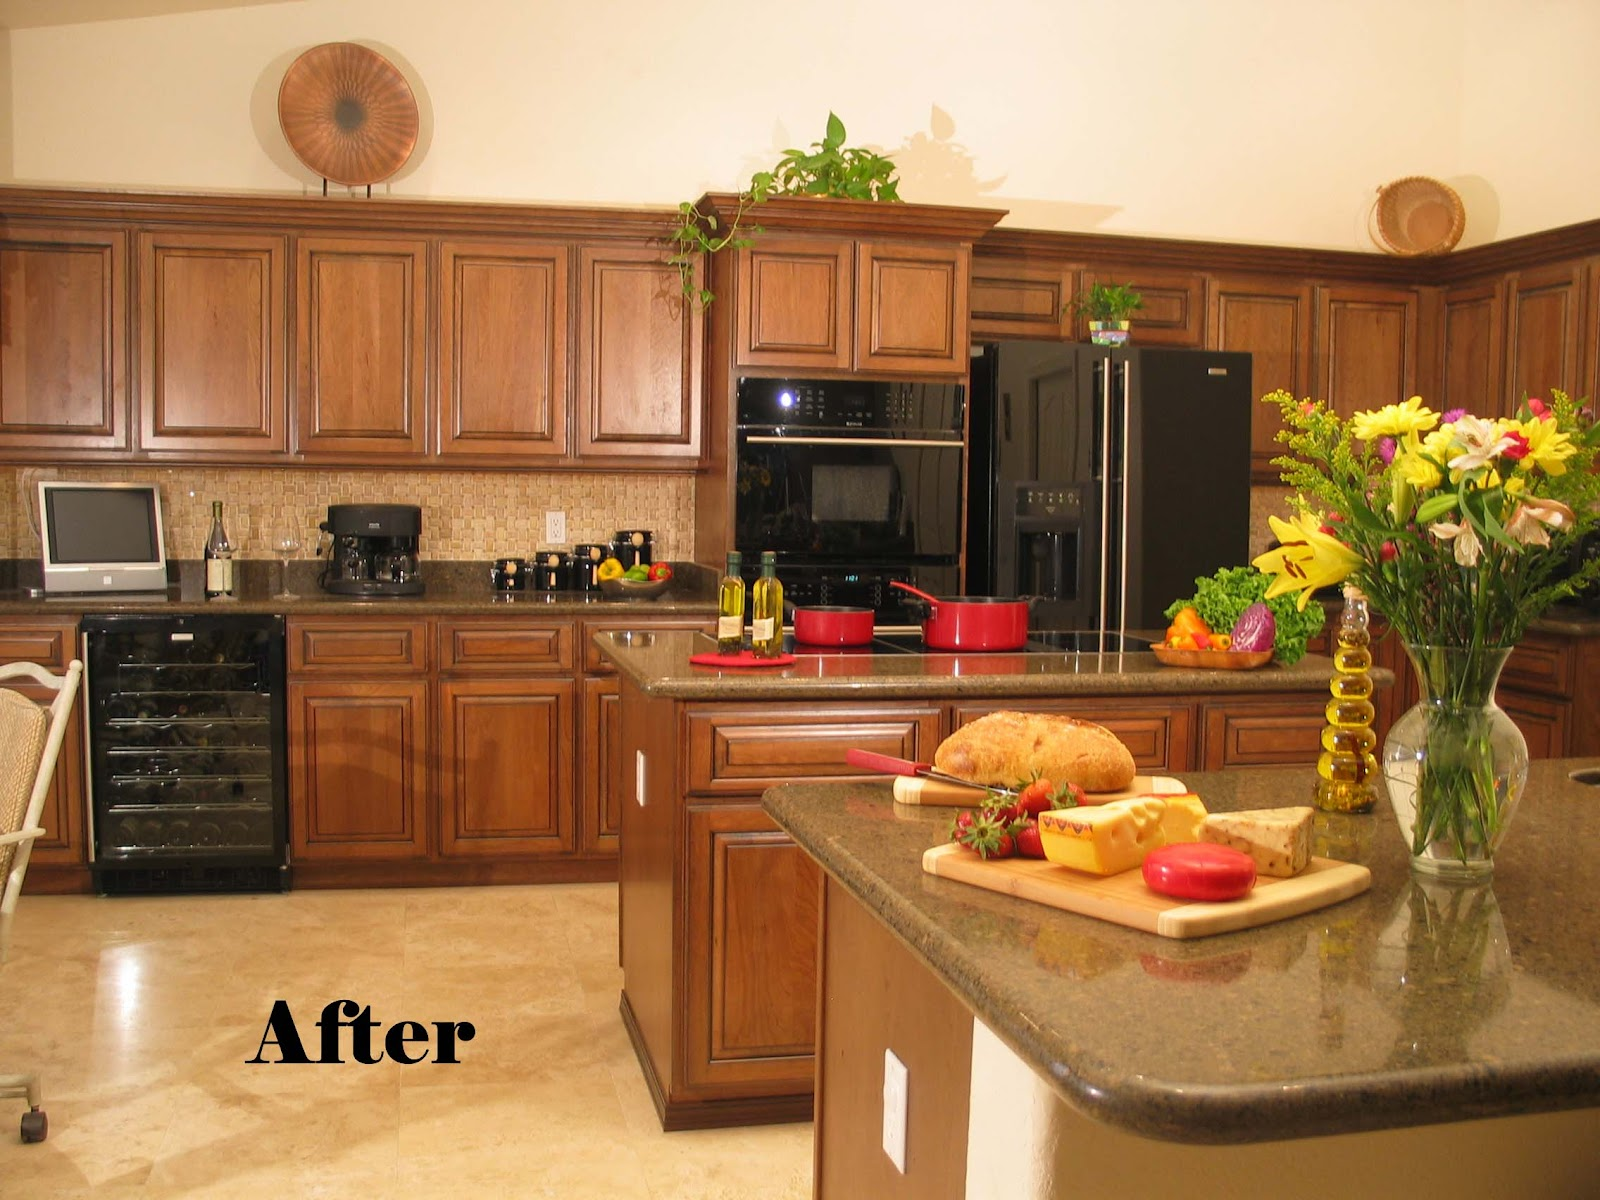 Rawdoors.net Blog: What is Kitchen Cabinet Refacing or Resurfacing?